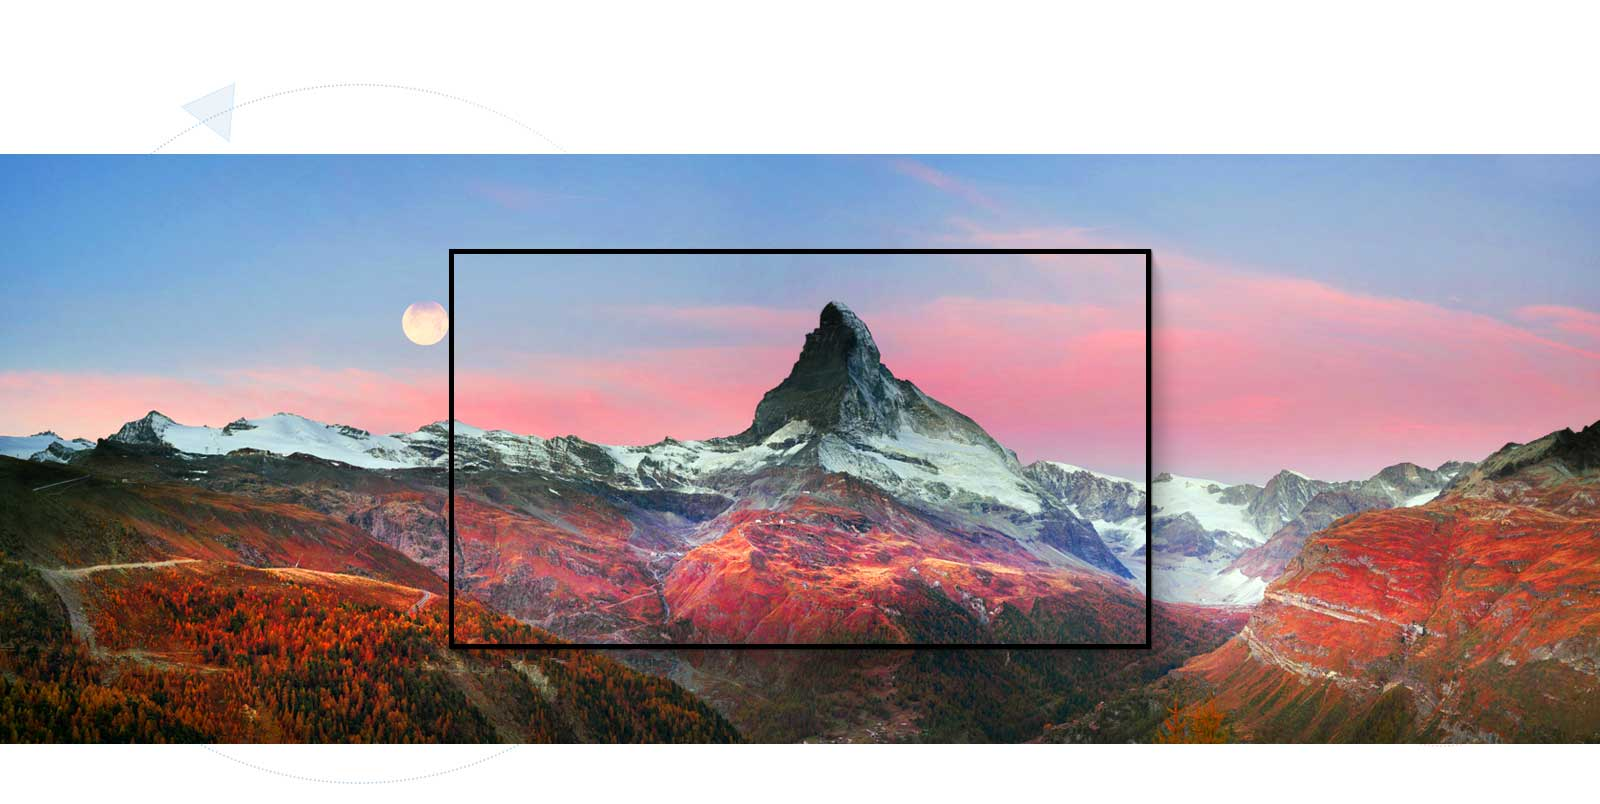 A frame capturing the scenery of a magnificent mountain(play the video)